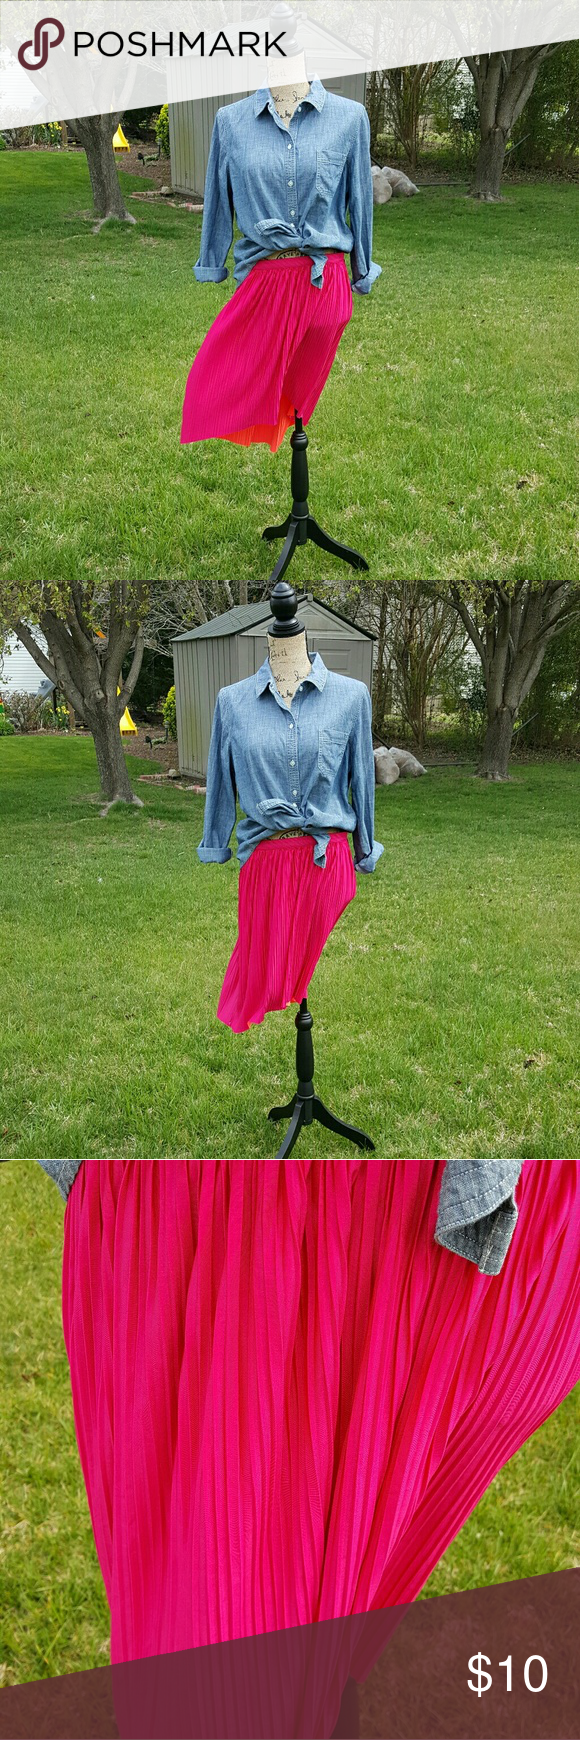 {Xhilaration} reversible hi-low skirt Xhilaration reversible hi-low skirt. Brand new with tags. Large size. Has small pleats all around. Elastic waistband. Pink on one side and coral on the other.  I have a pet and smoke free home. Please feel free to make a bundle and submit an offer! Xhilaration Skirts High Low